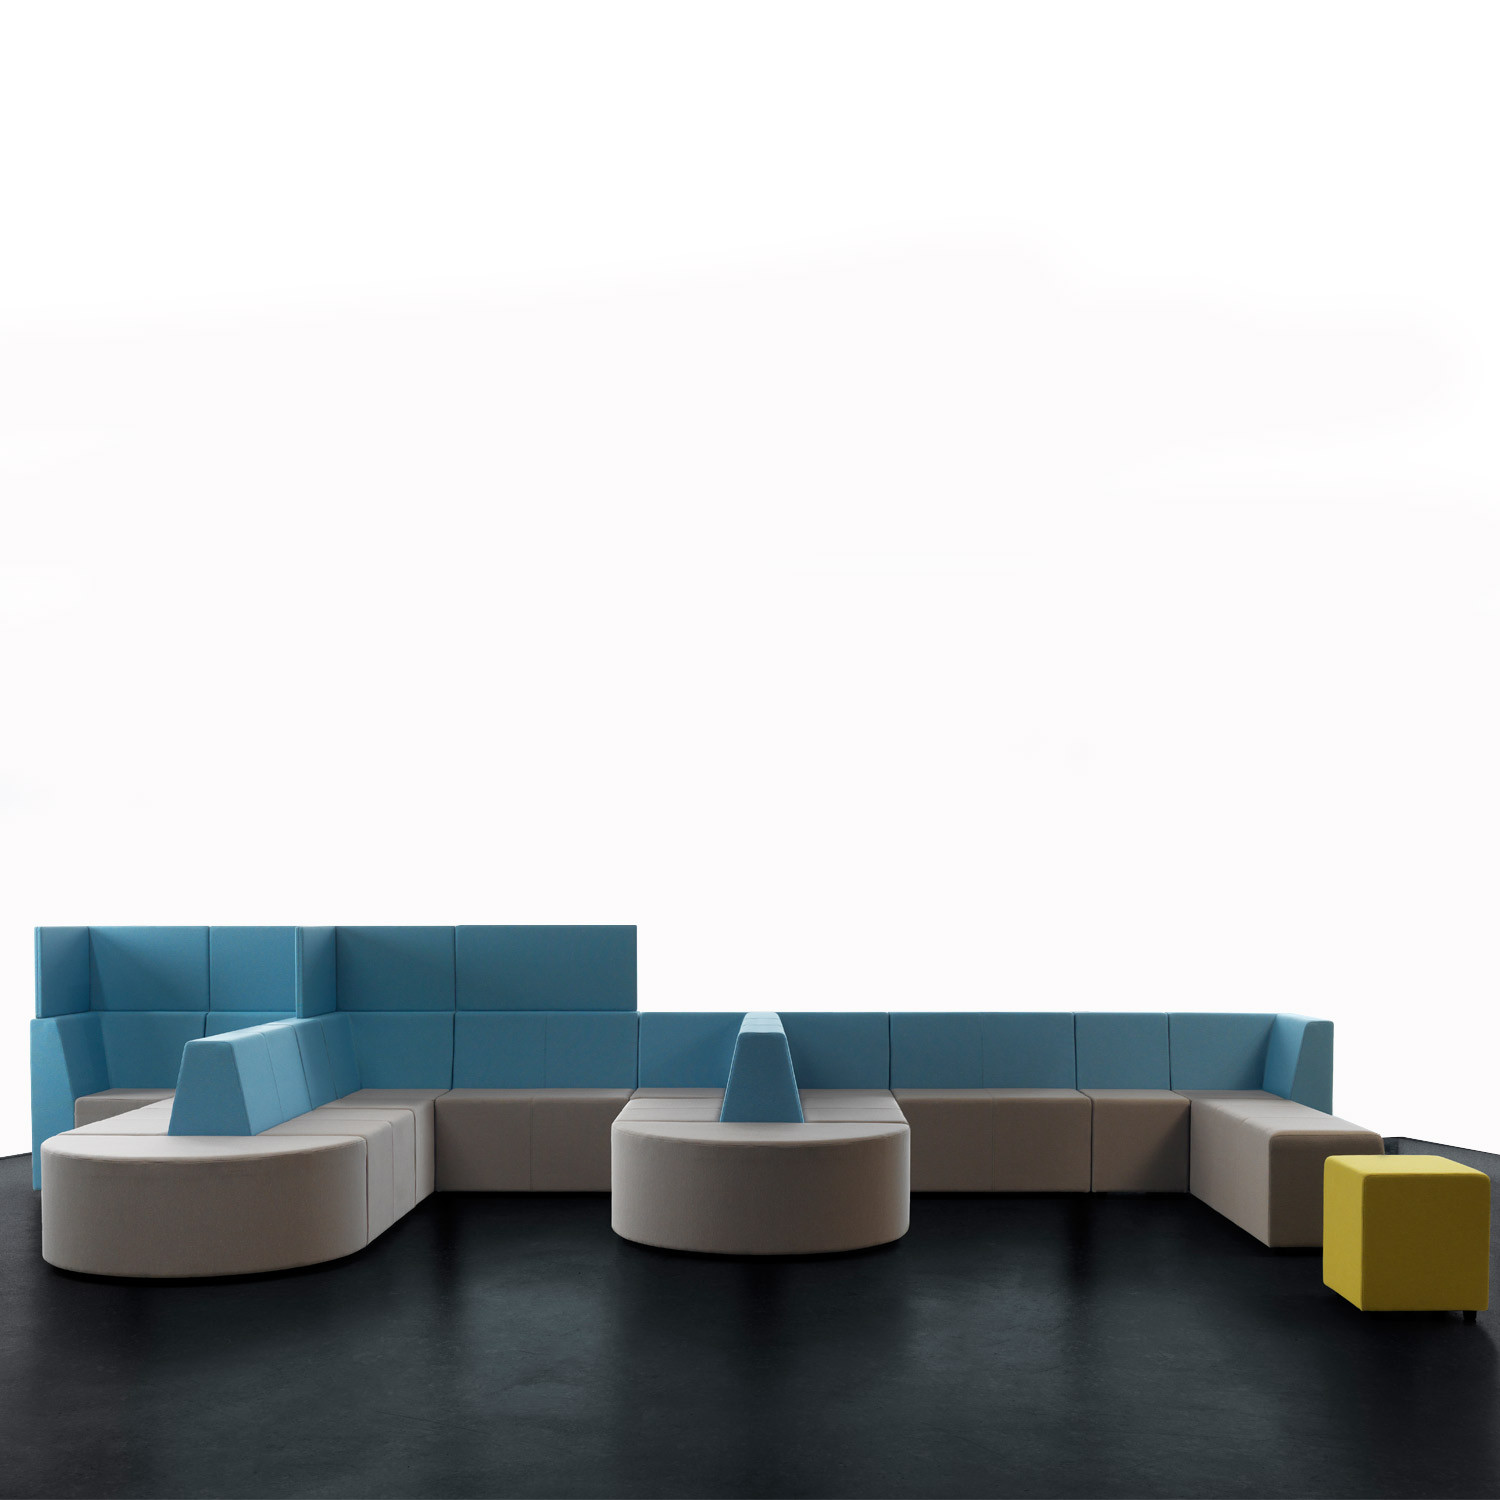 Box-it Soft Seating